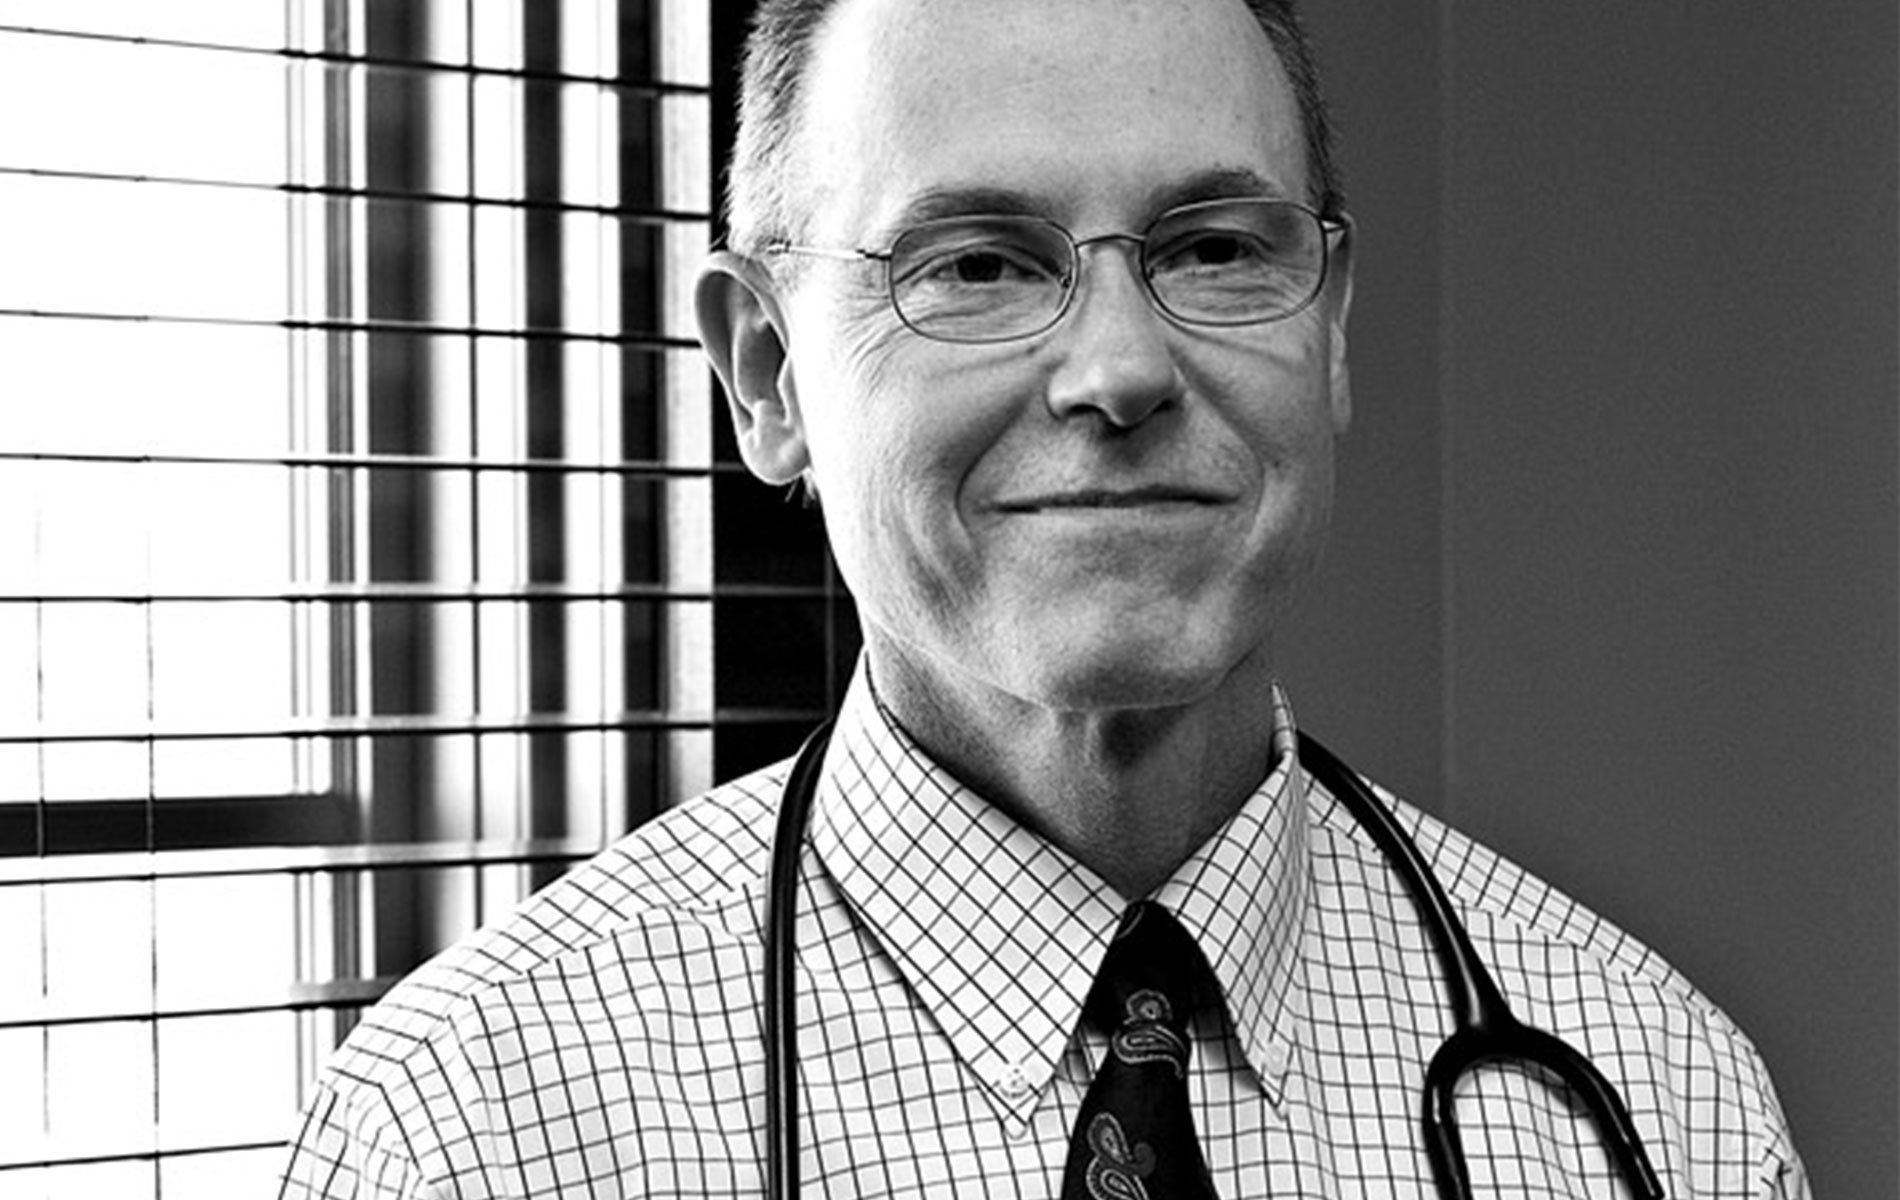 Dr. William E. Varnadore of Rosemary Beach, health, anti-aging; antiaging doctor